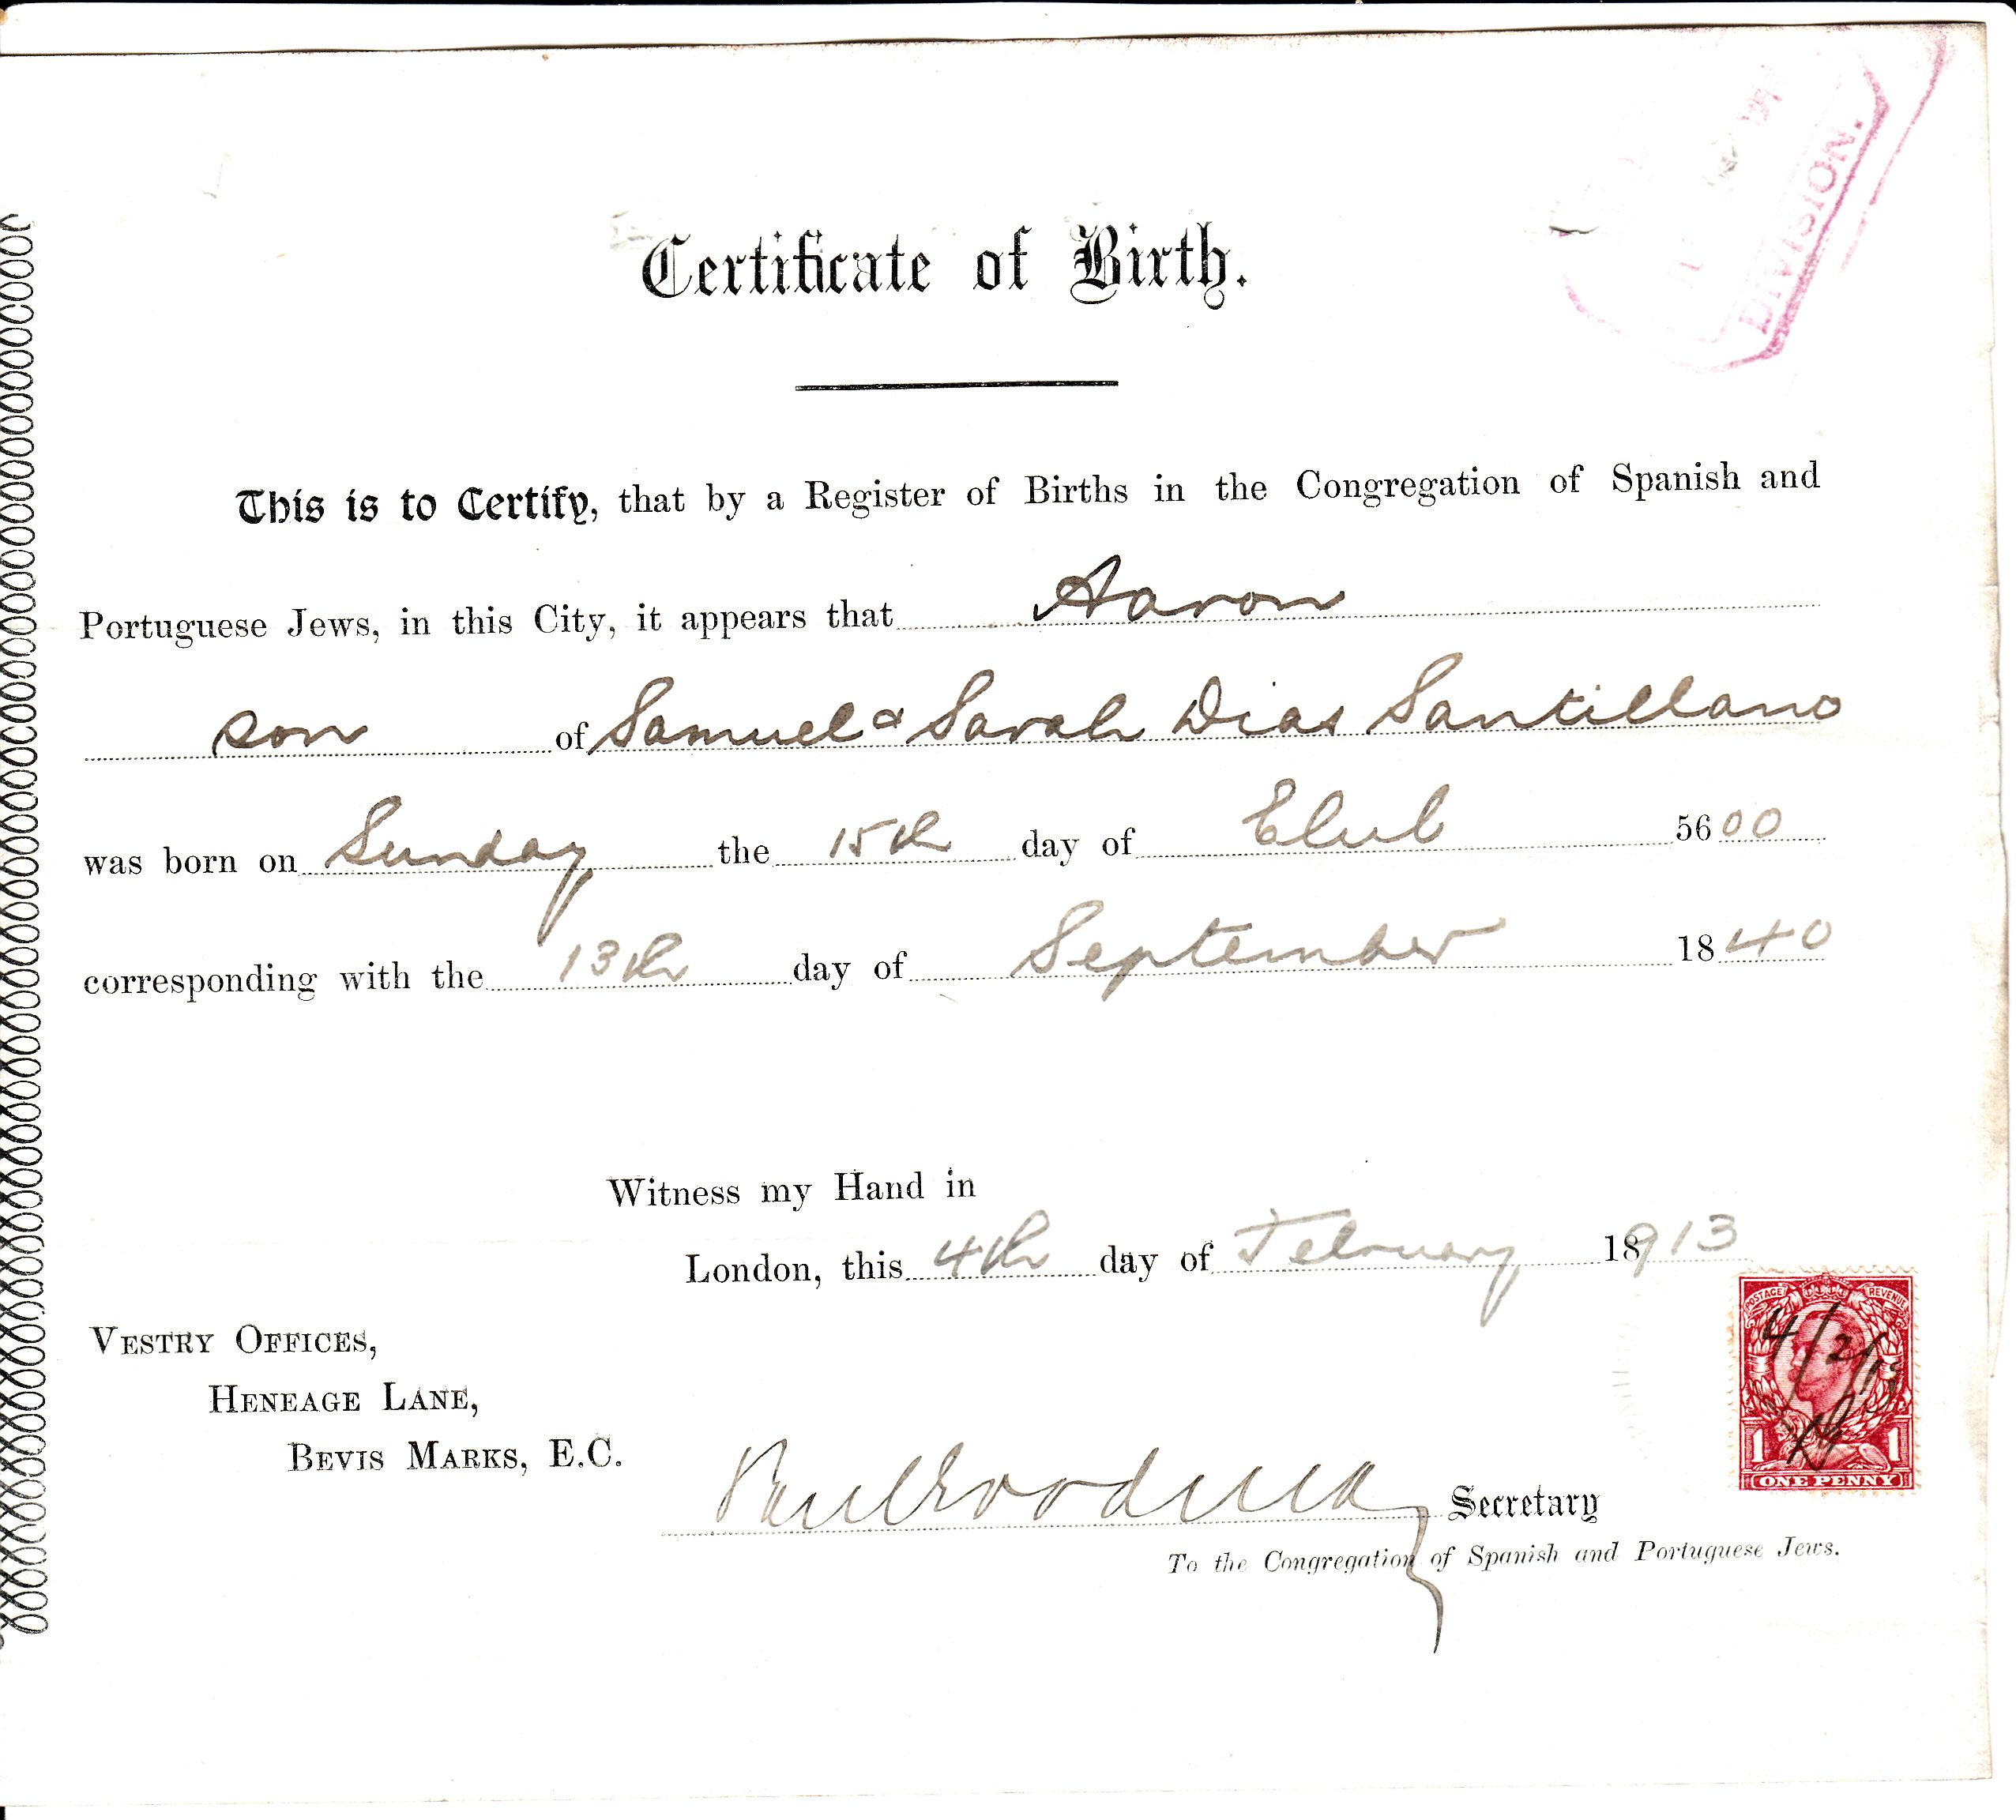 Henry Dias, 2nd NJ Infantry. He Applied For Pension